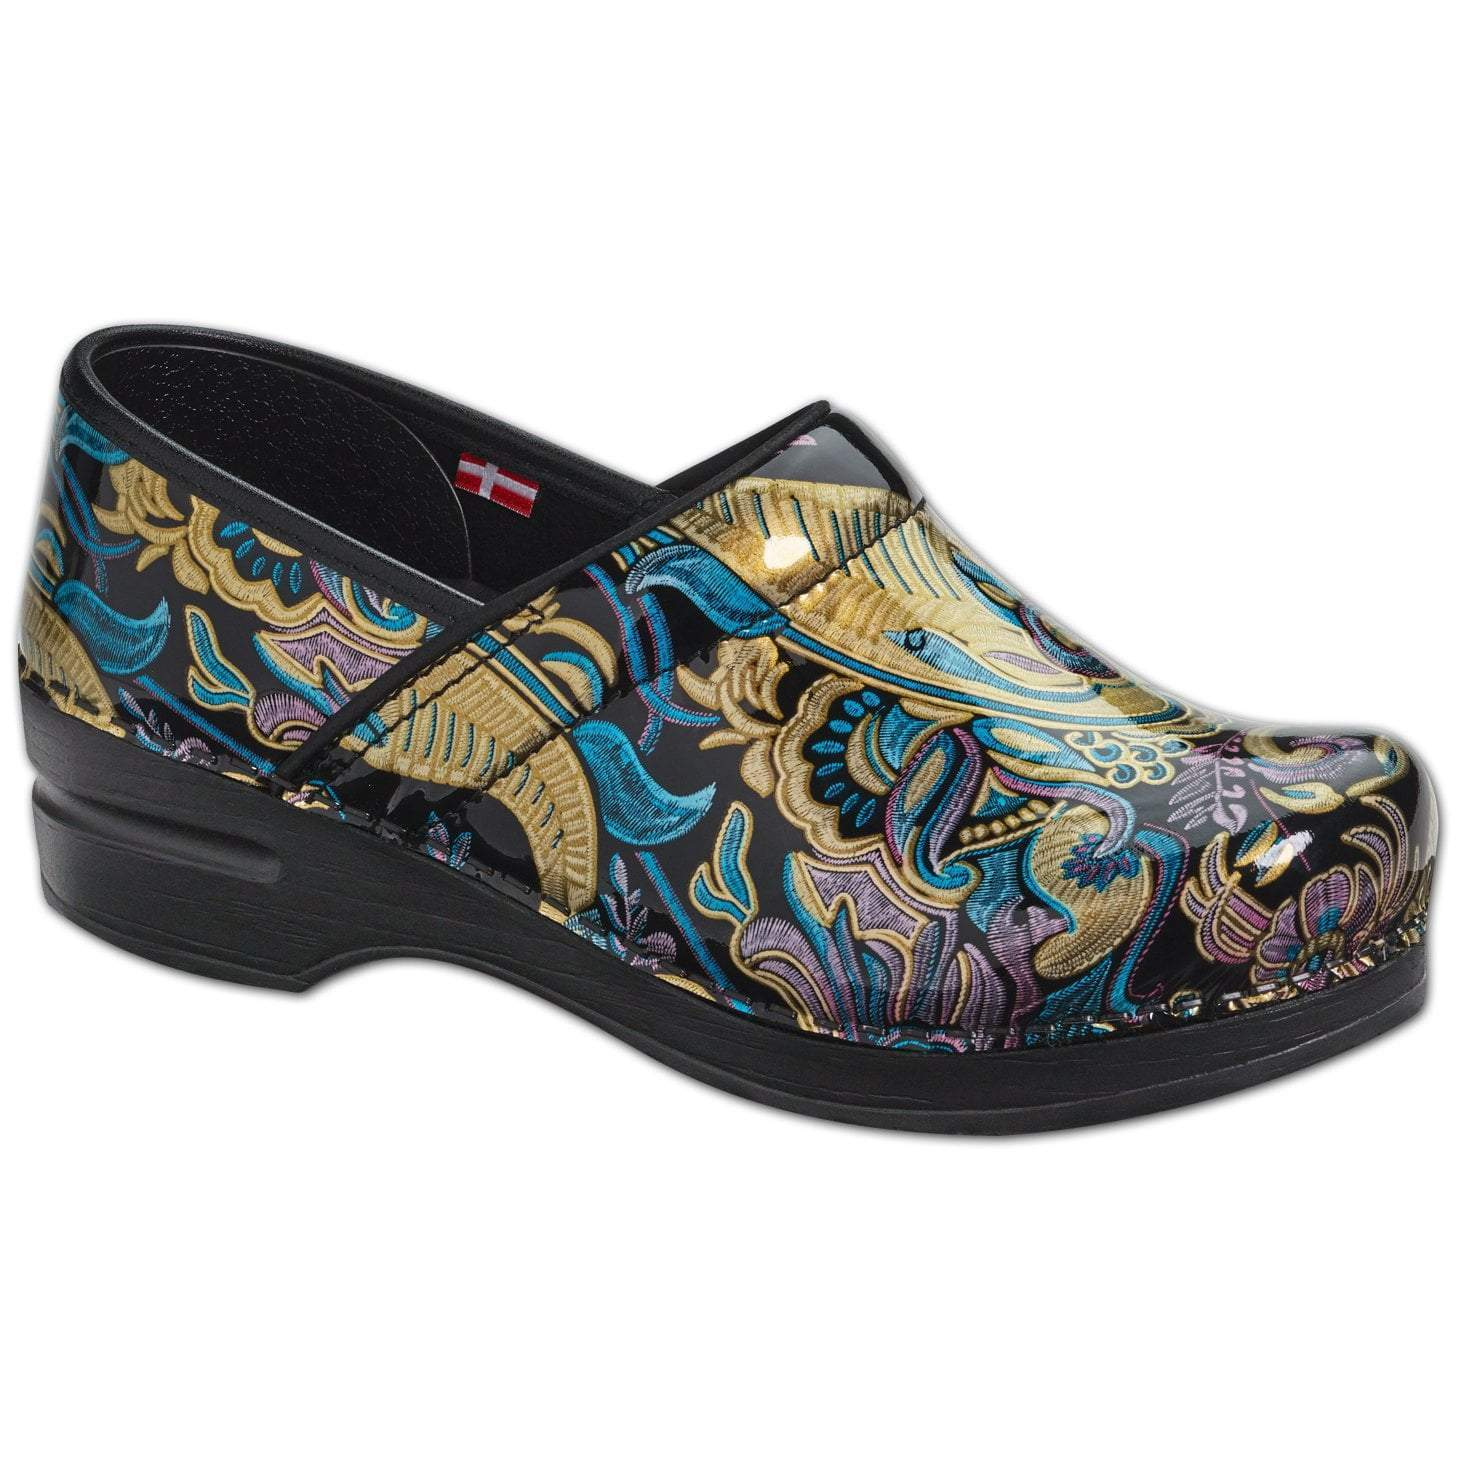 Sanita Chaya Women's Closed Back Clog